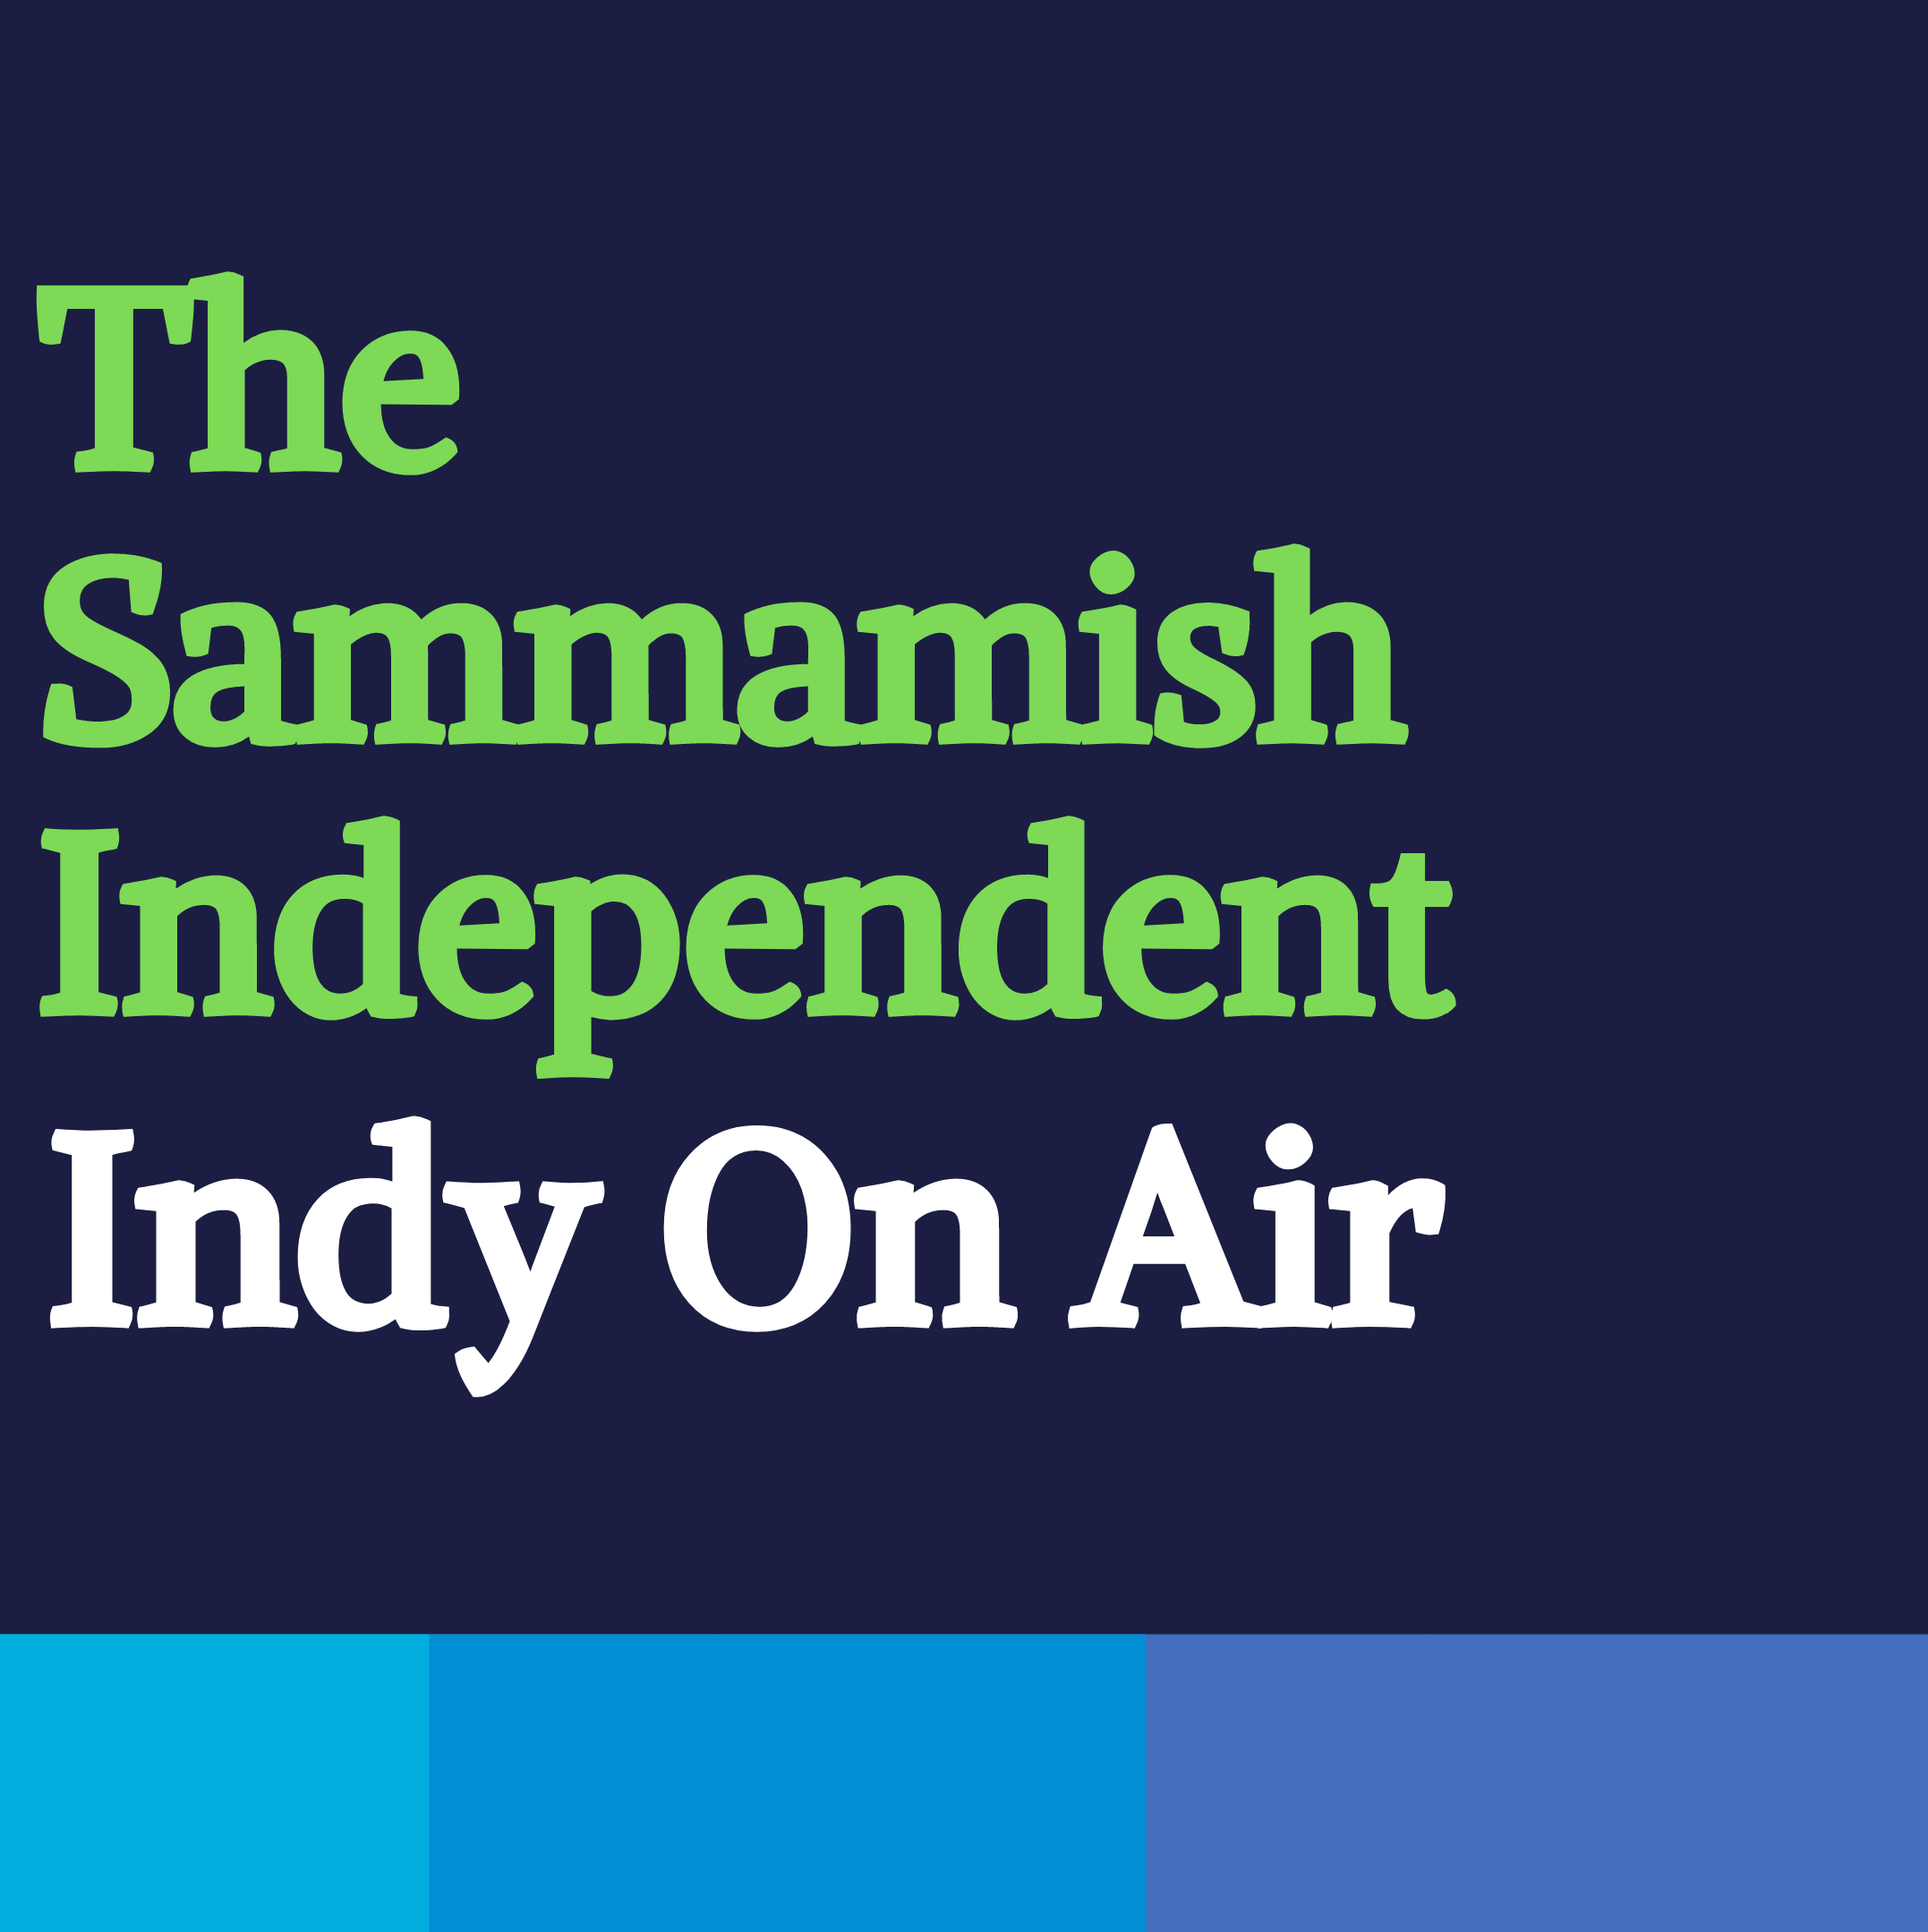 Indy On Air - Official Logo